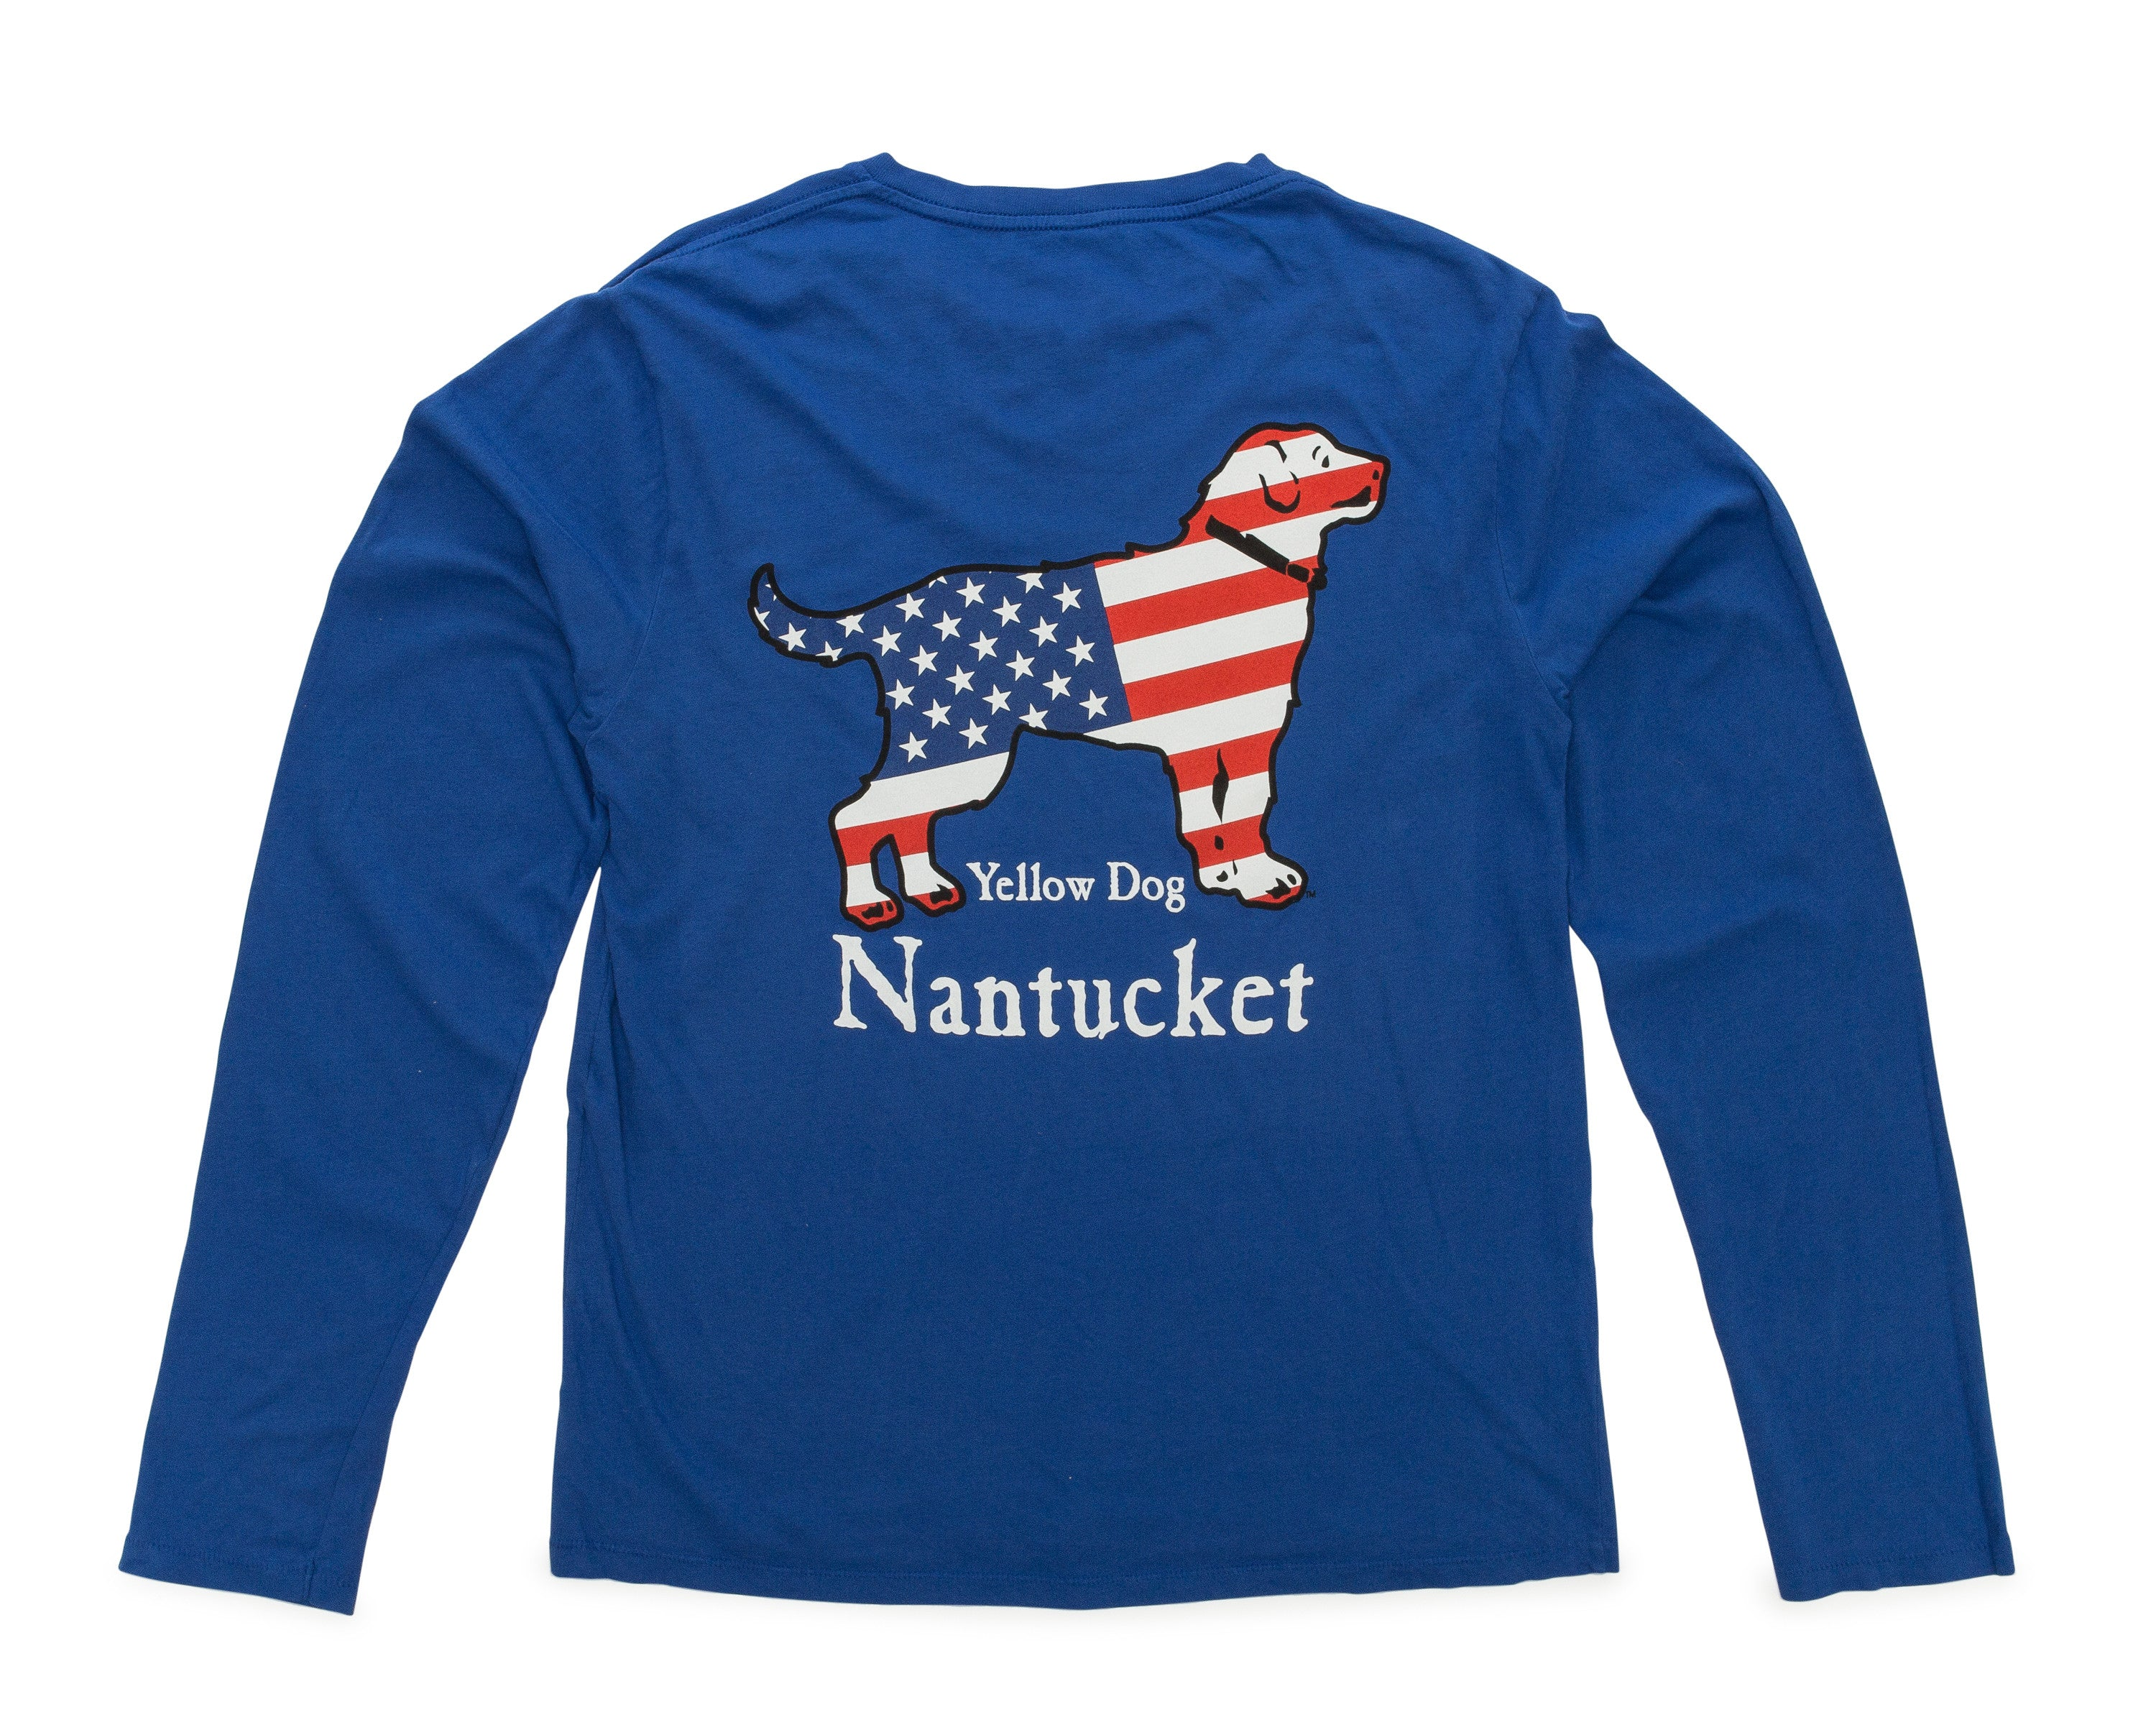 Yellow Dog Nantucket Long Sleeve USA Tshirt Unisex fit